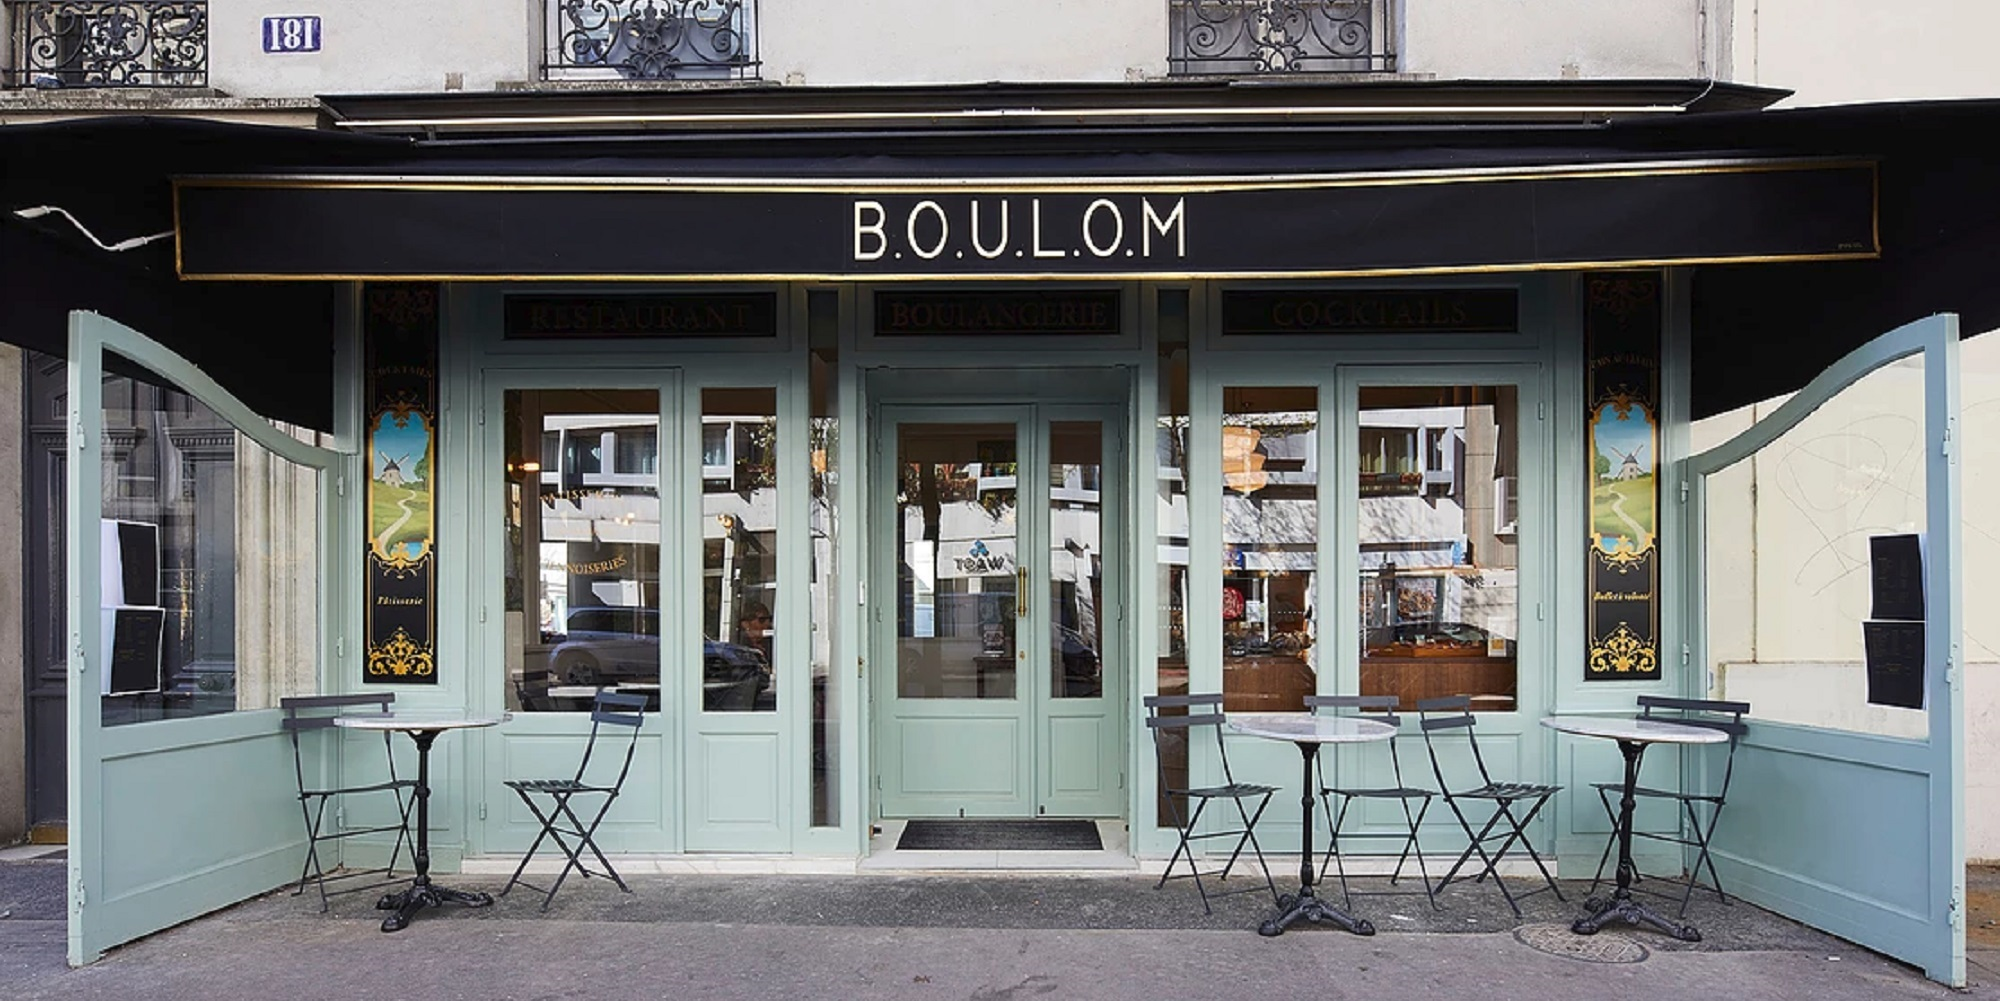 Brunch B.O.U.L.O.M. (75018 Paris)